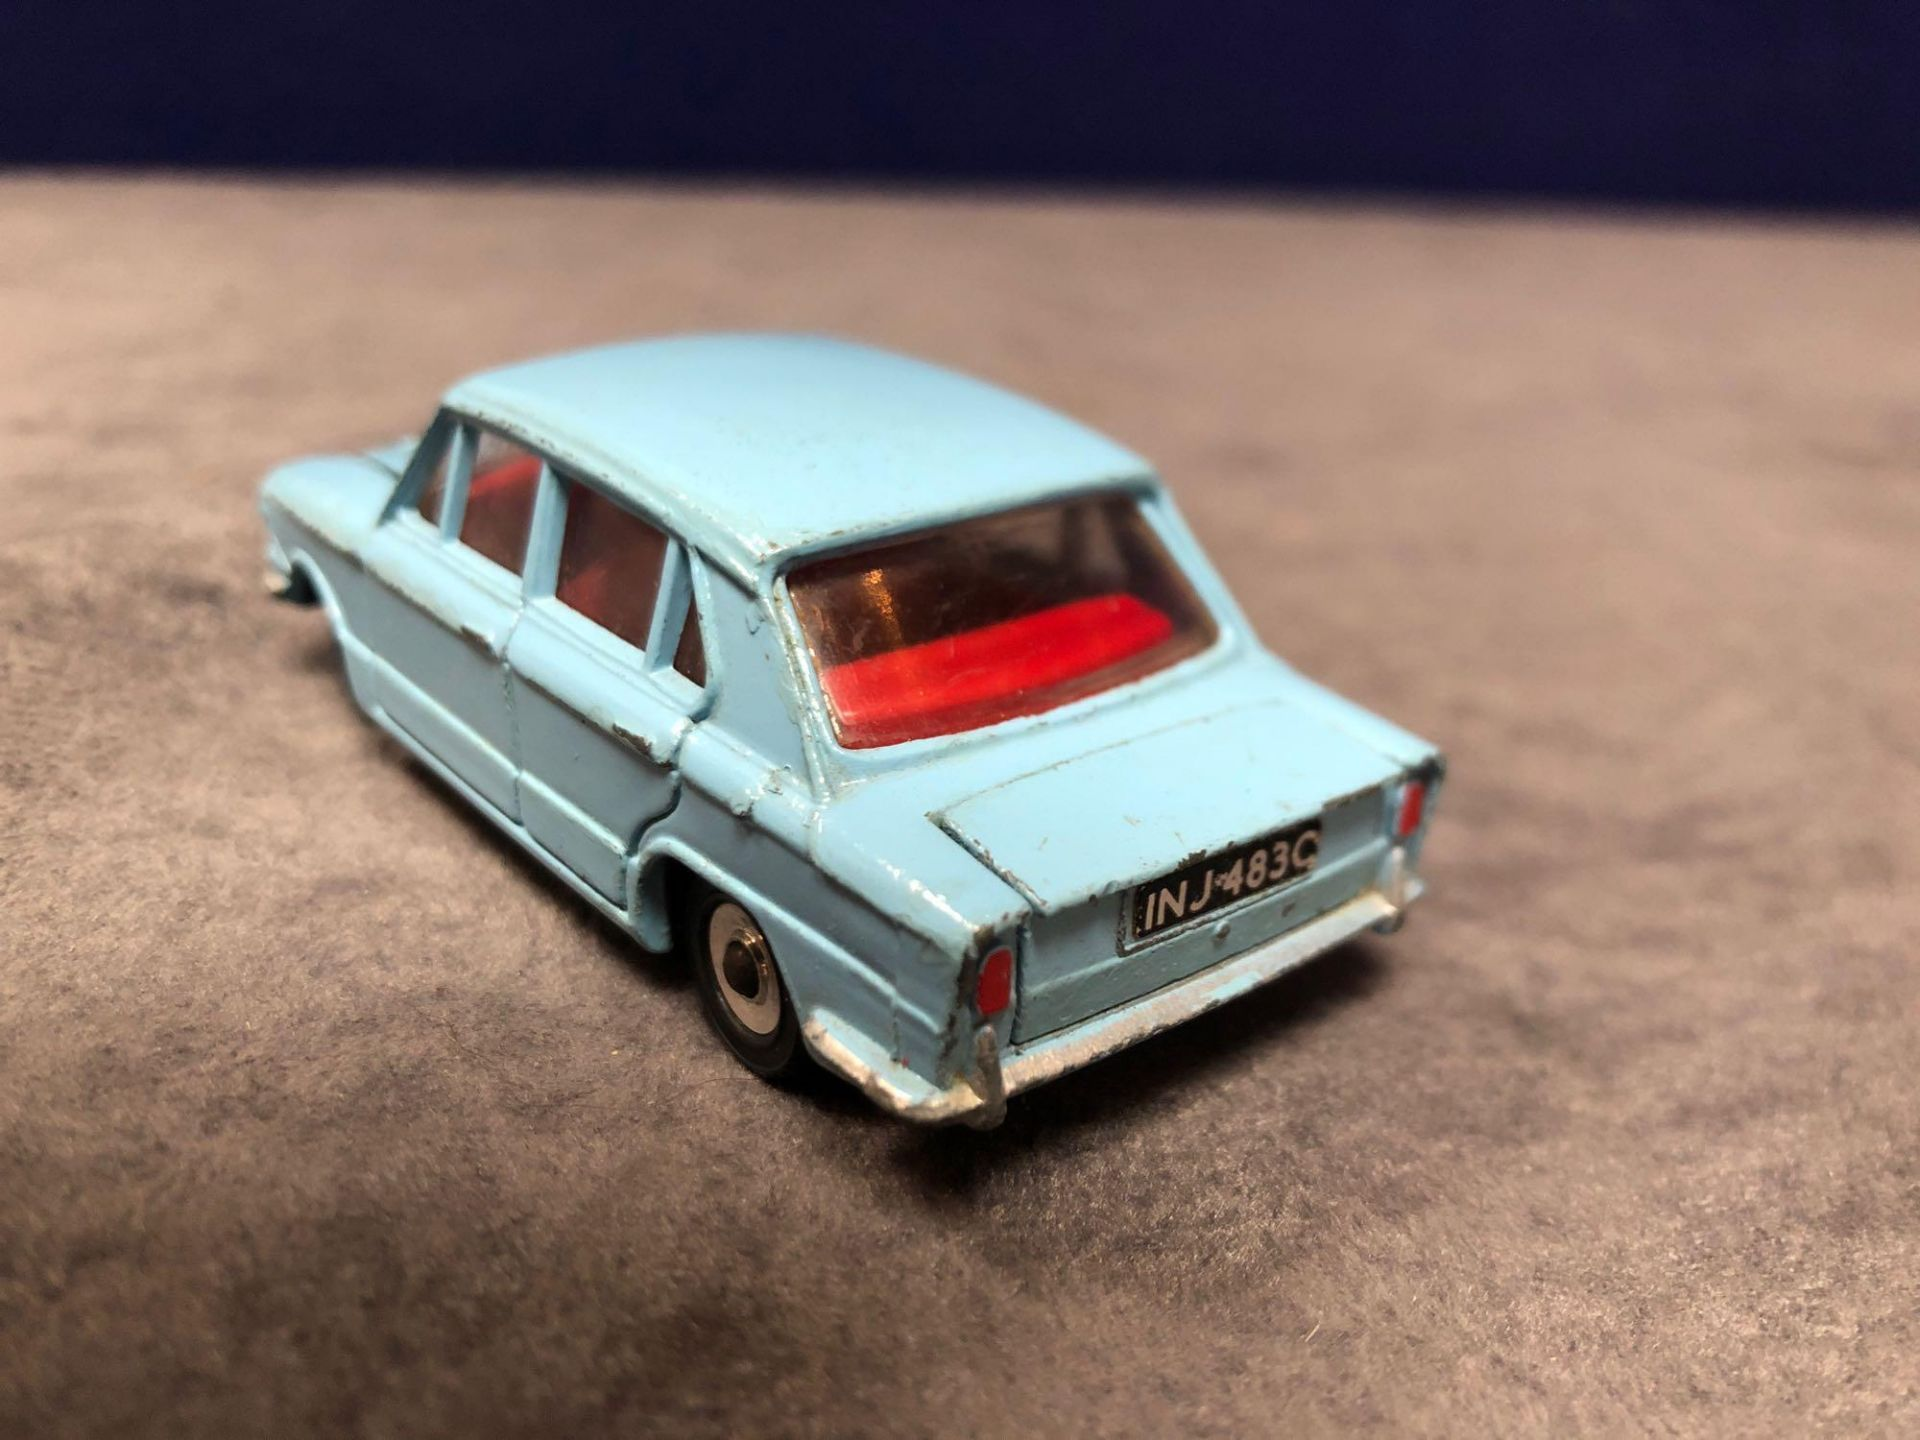 Dinky #162 Triumph 1300 Blue - Red Interior, Spun Hubs And Number Plates 1966 - 1969 Unboxed very - Image 3 of 4